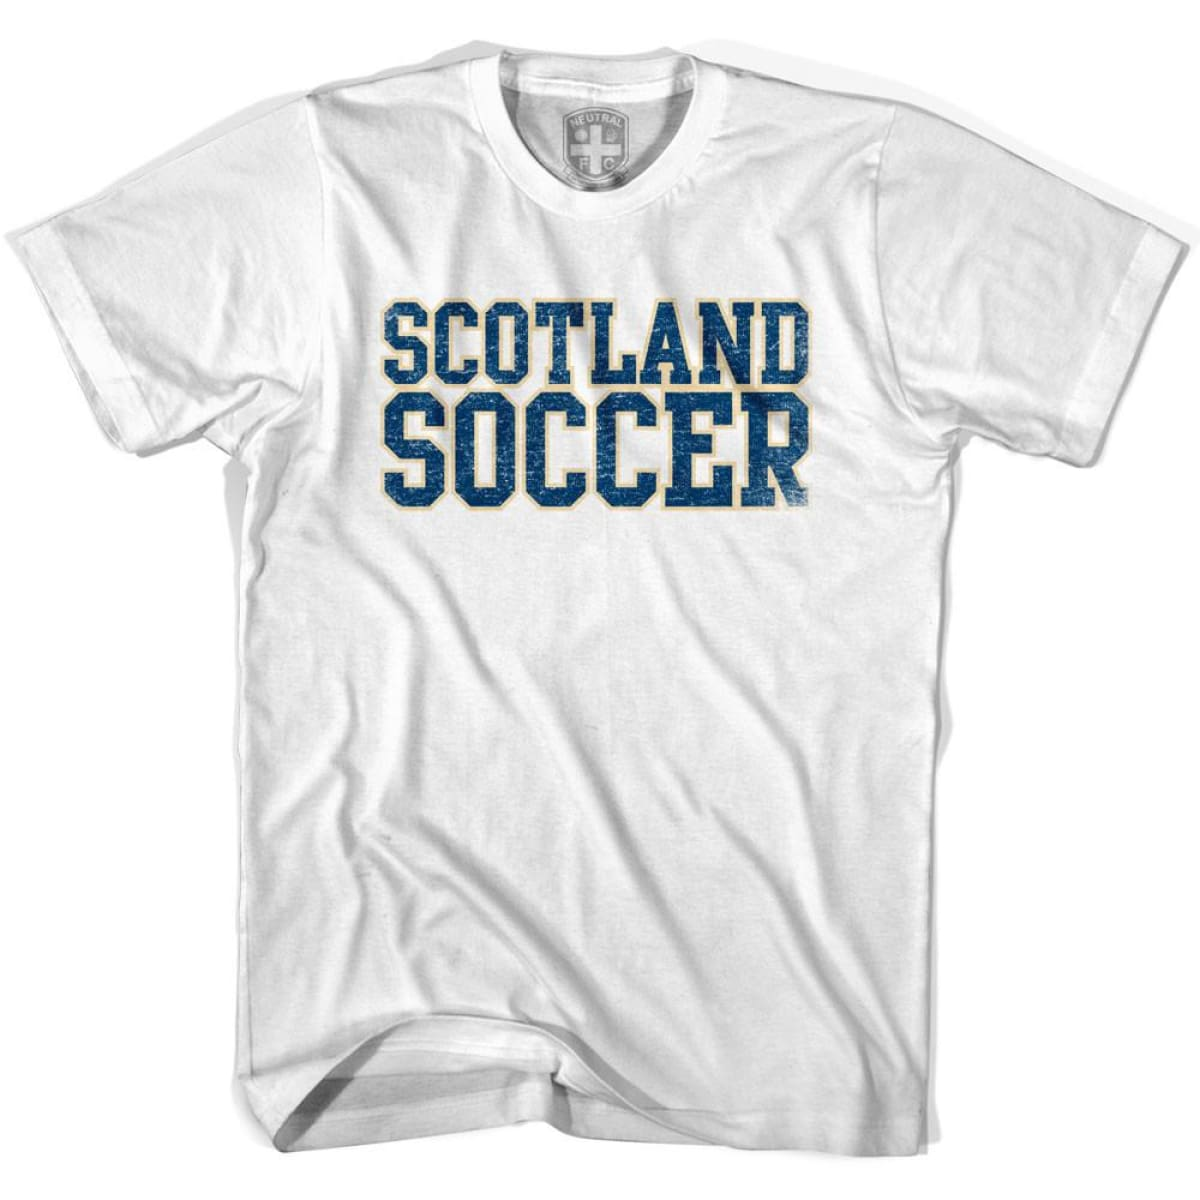 Scotland Soccer Nations World Cup T-shirt - White / Youth X-Small - Ultras Soccer T-shirts